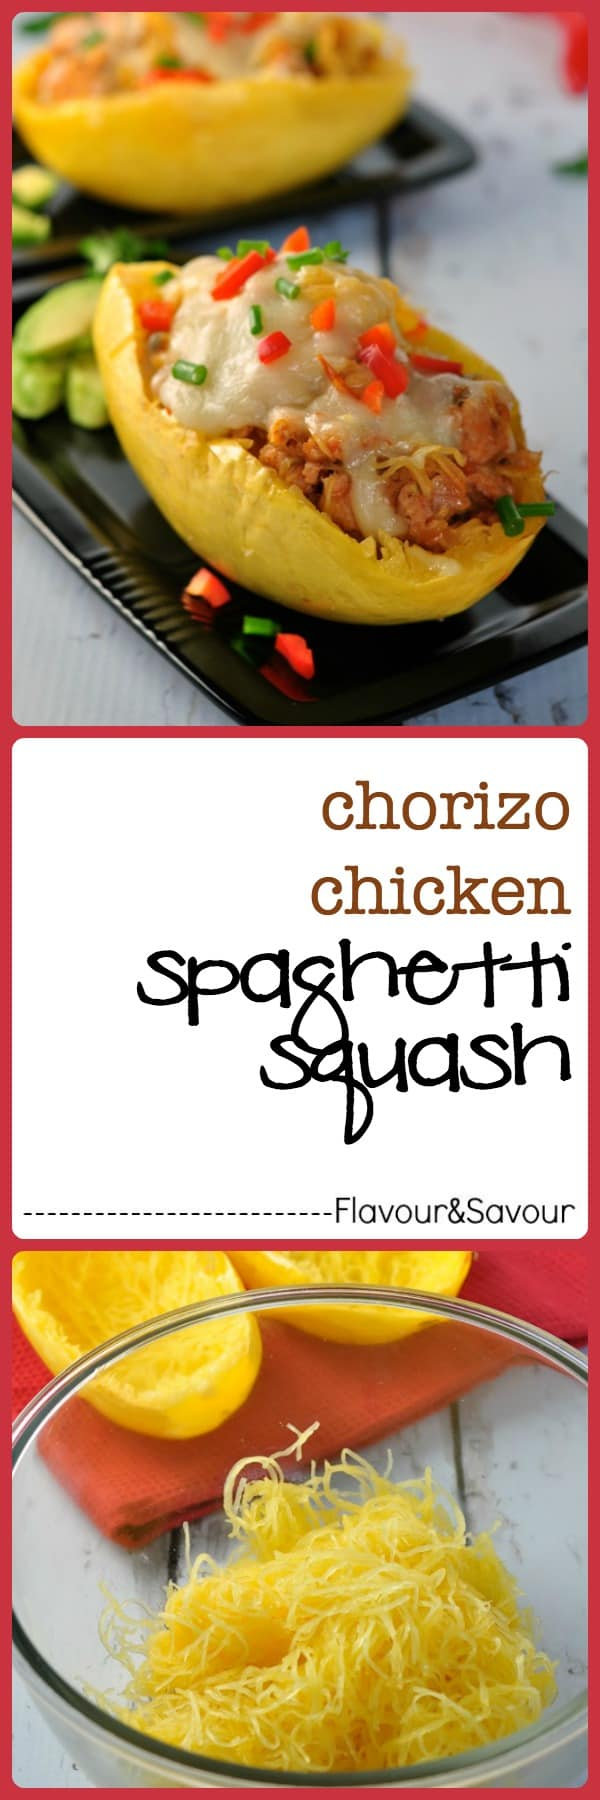 Chorizo Chicken Spaghetti Squash. Spicy chorizo chicken sausage and zesty salsa add lots of flavour to nutritious spaghetti squash. flavourandsavour.com